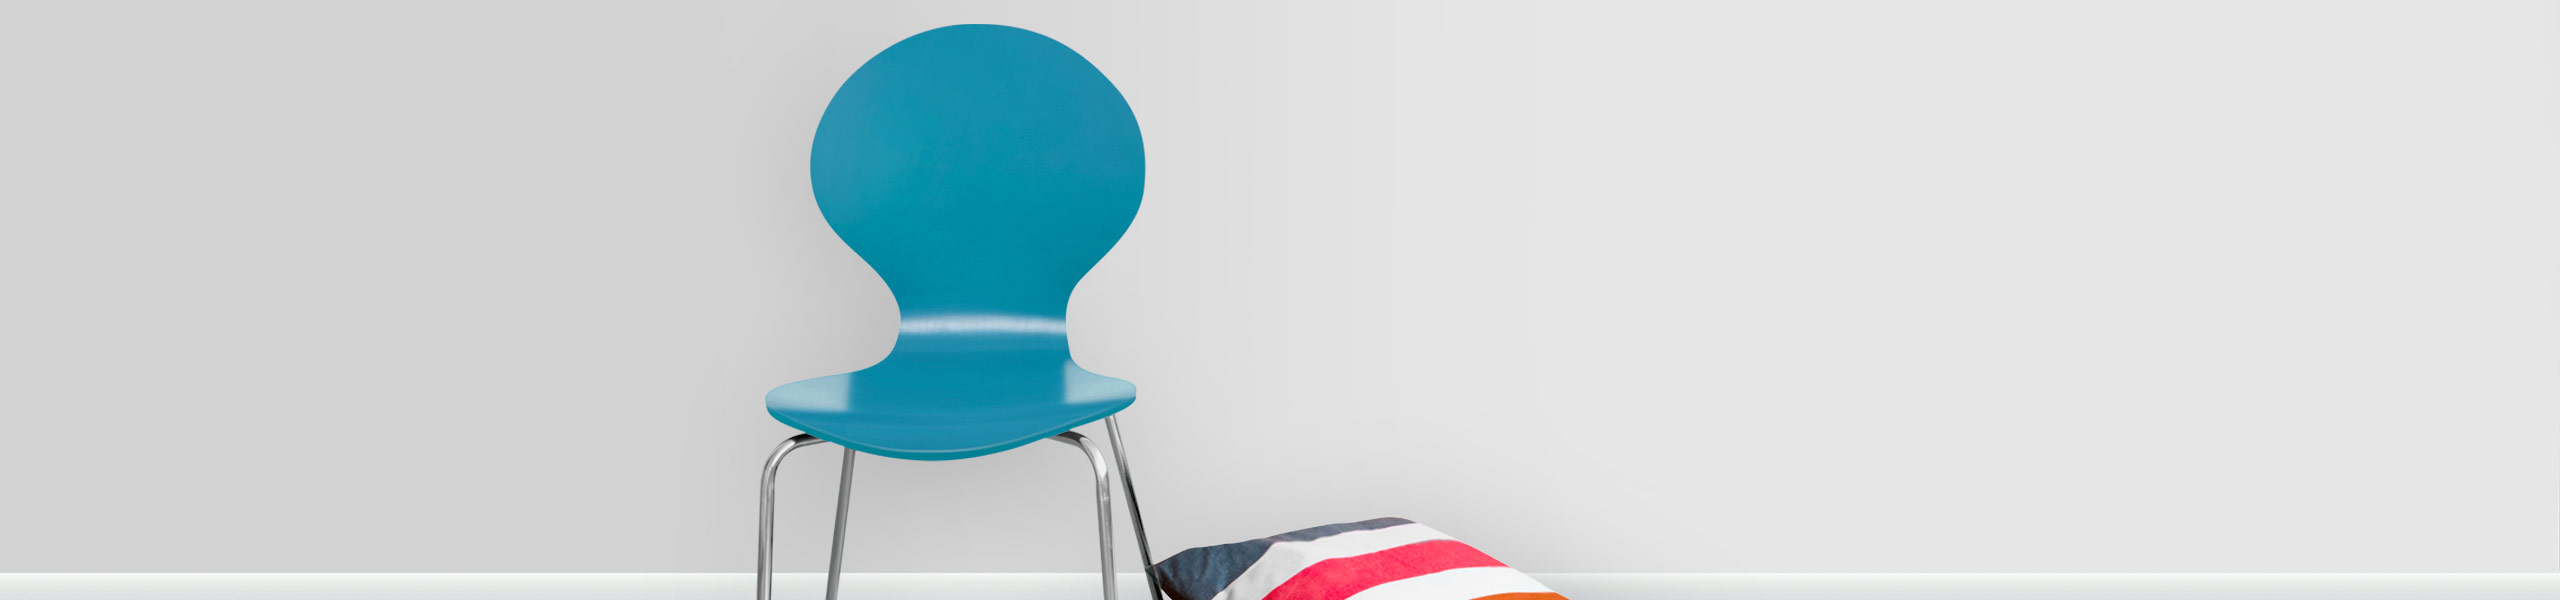 Candy Chair Blue Video Banner